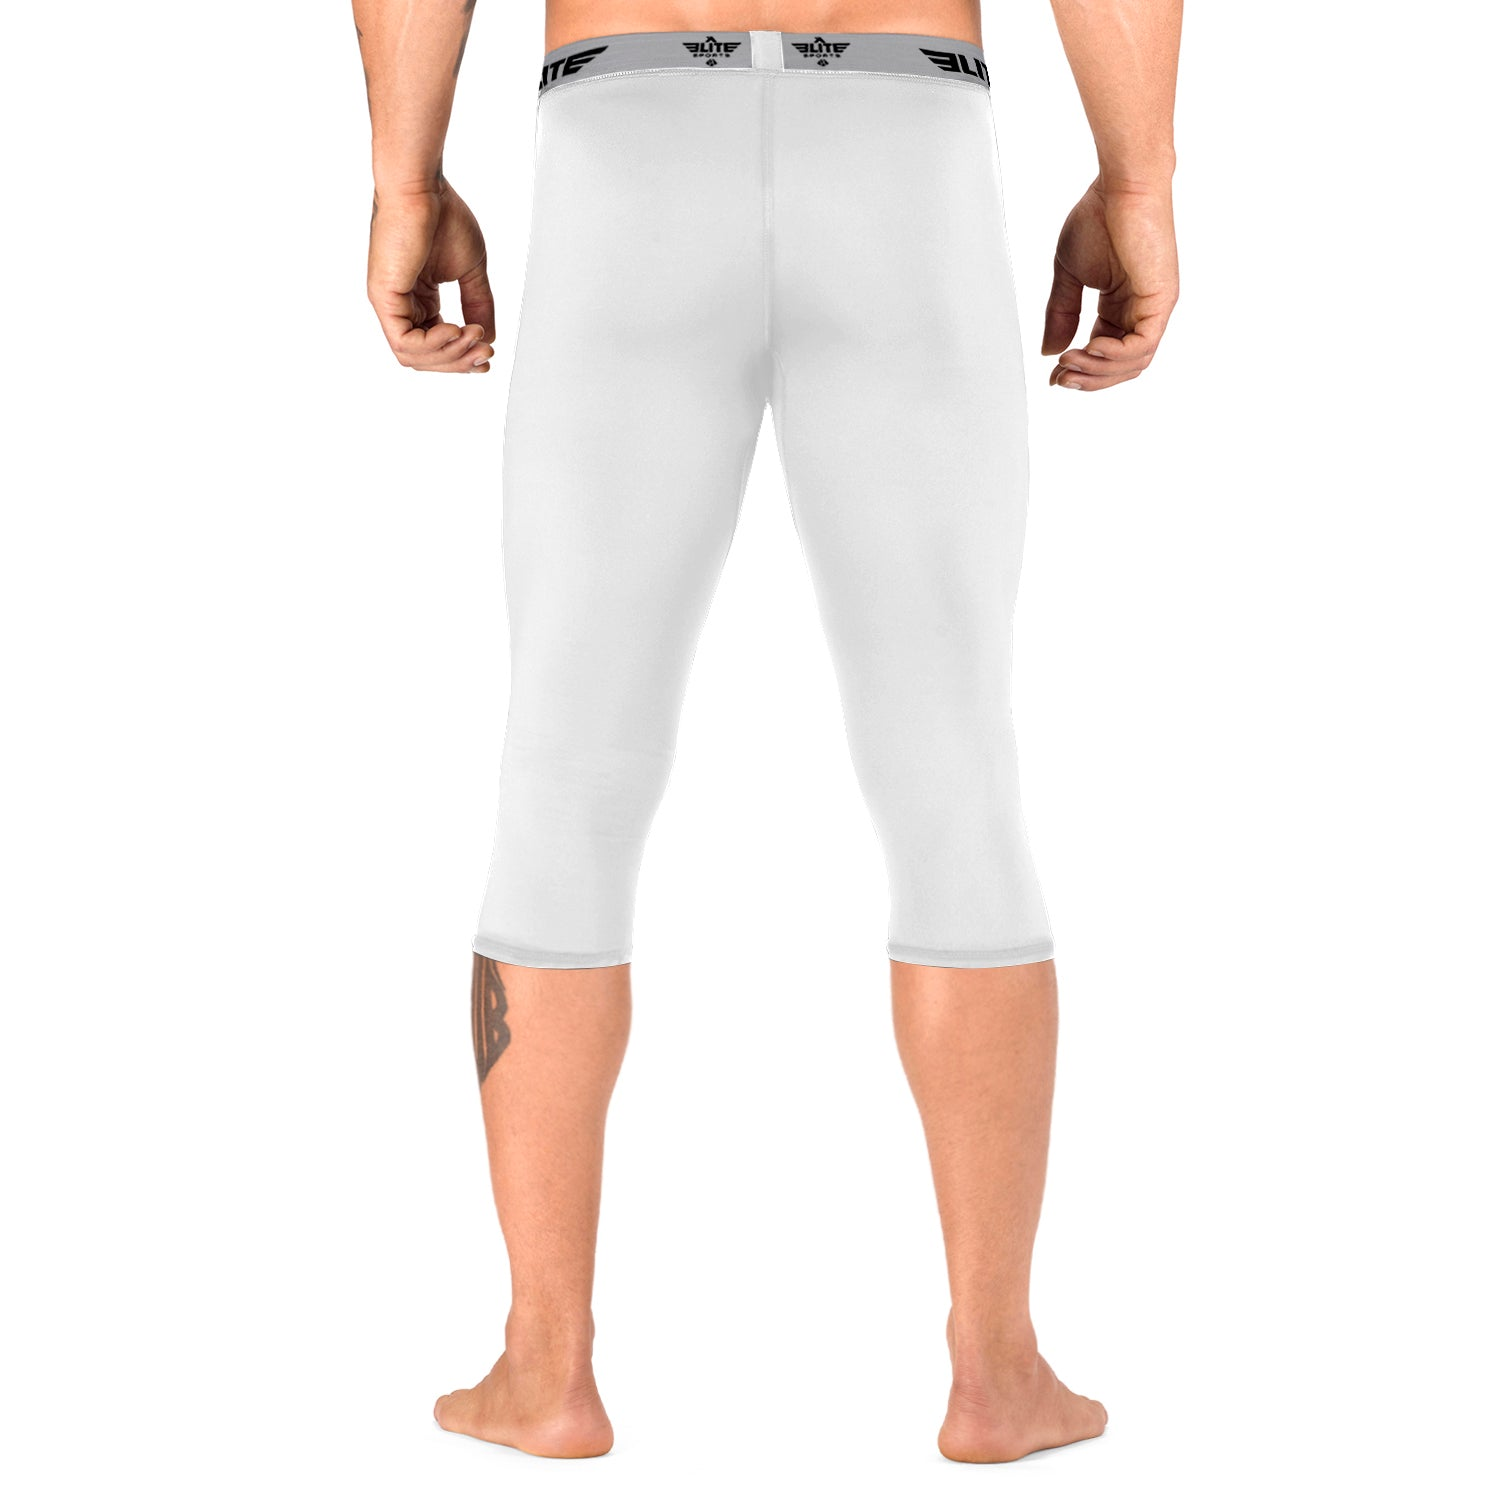 Load image into Gallery viewer, Elite Sports Three Quarter White Compression Training Spat Pants